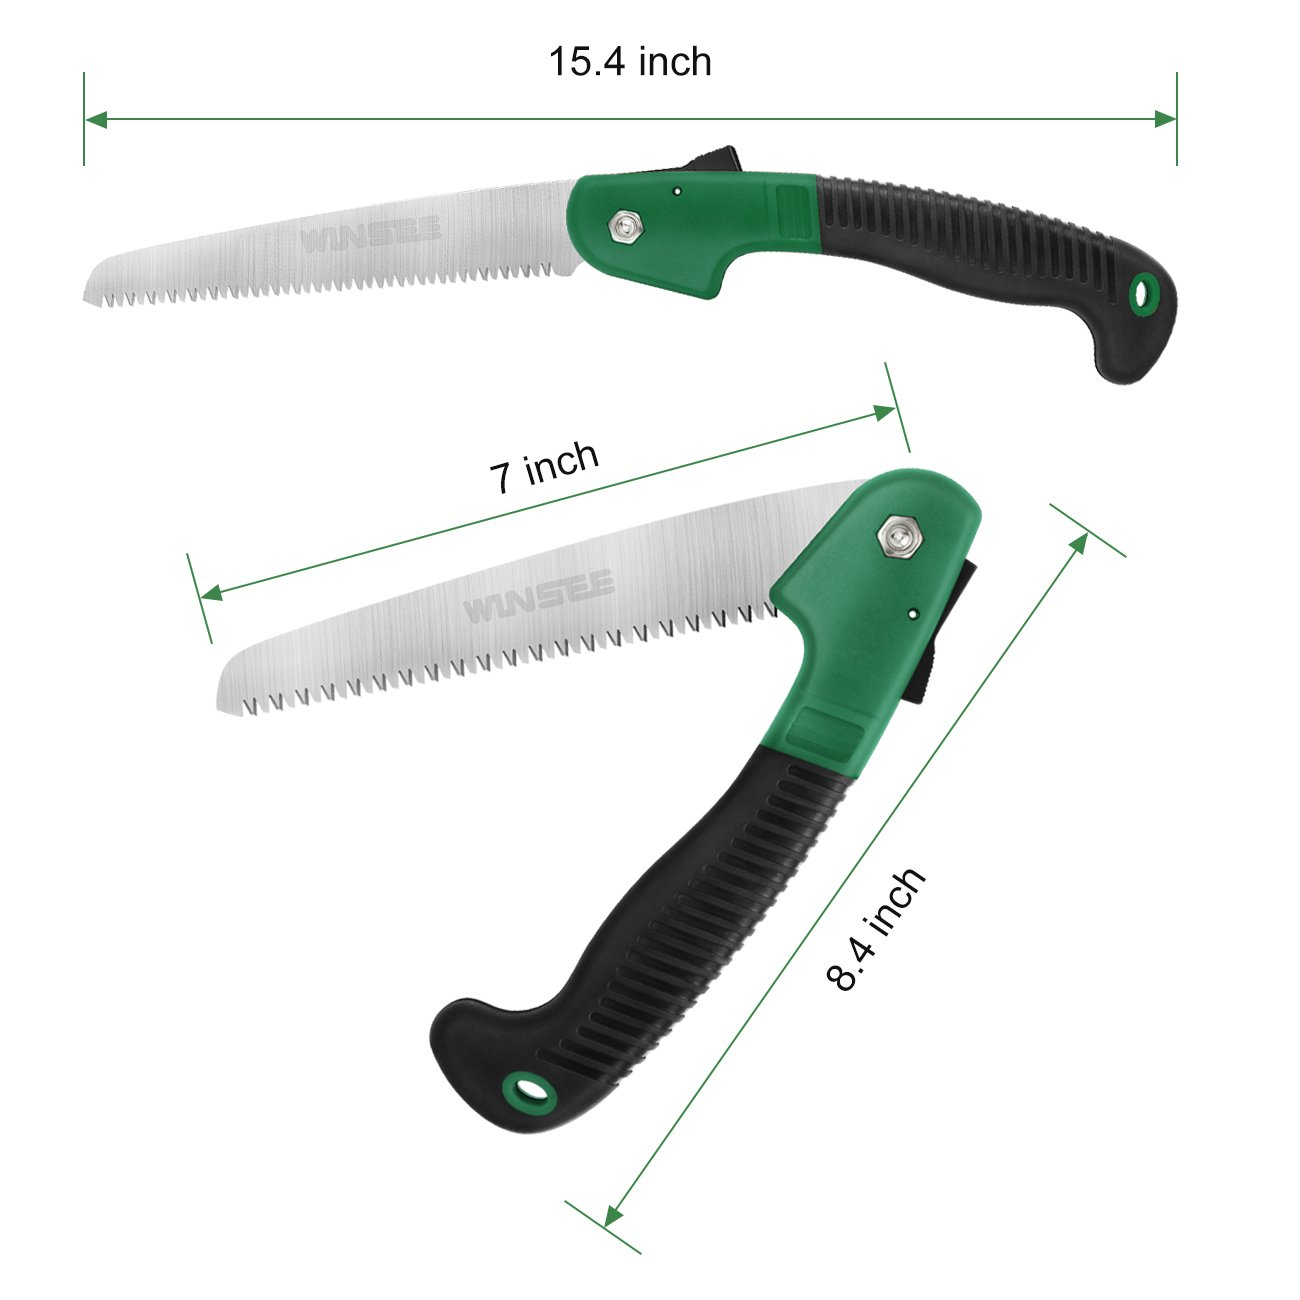 "WINSEE Folding Hand Saw, Pruning Saw with Rugged 7"" Blades for Tree Pruning, Hunting, Camping and Daily Use with Non Slip Ergonomics Handle Pruning Saws"